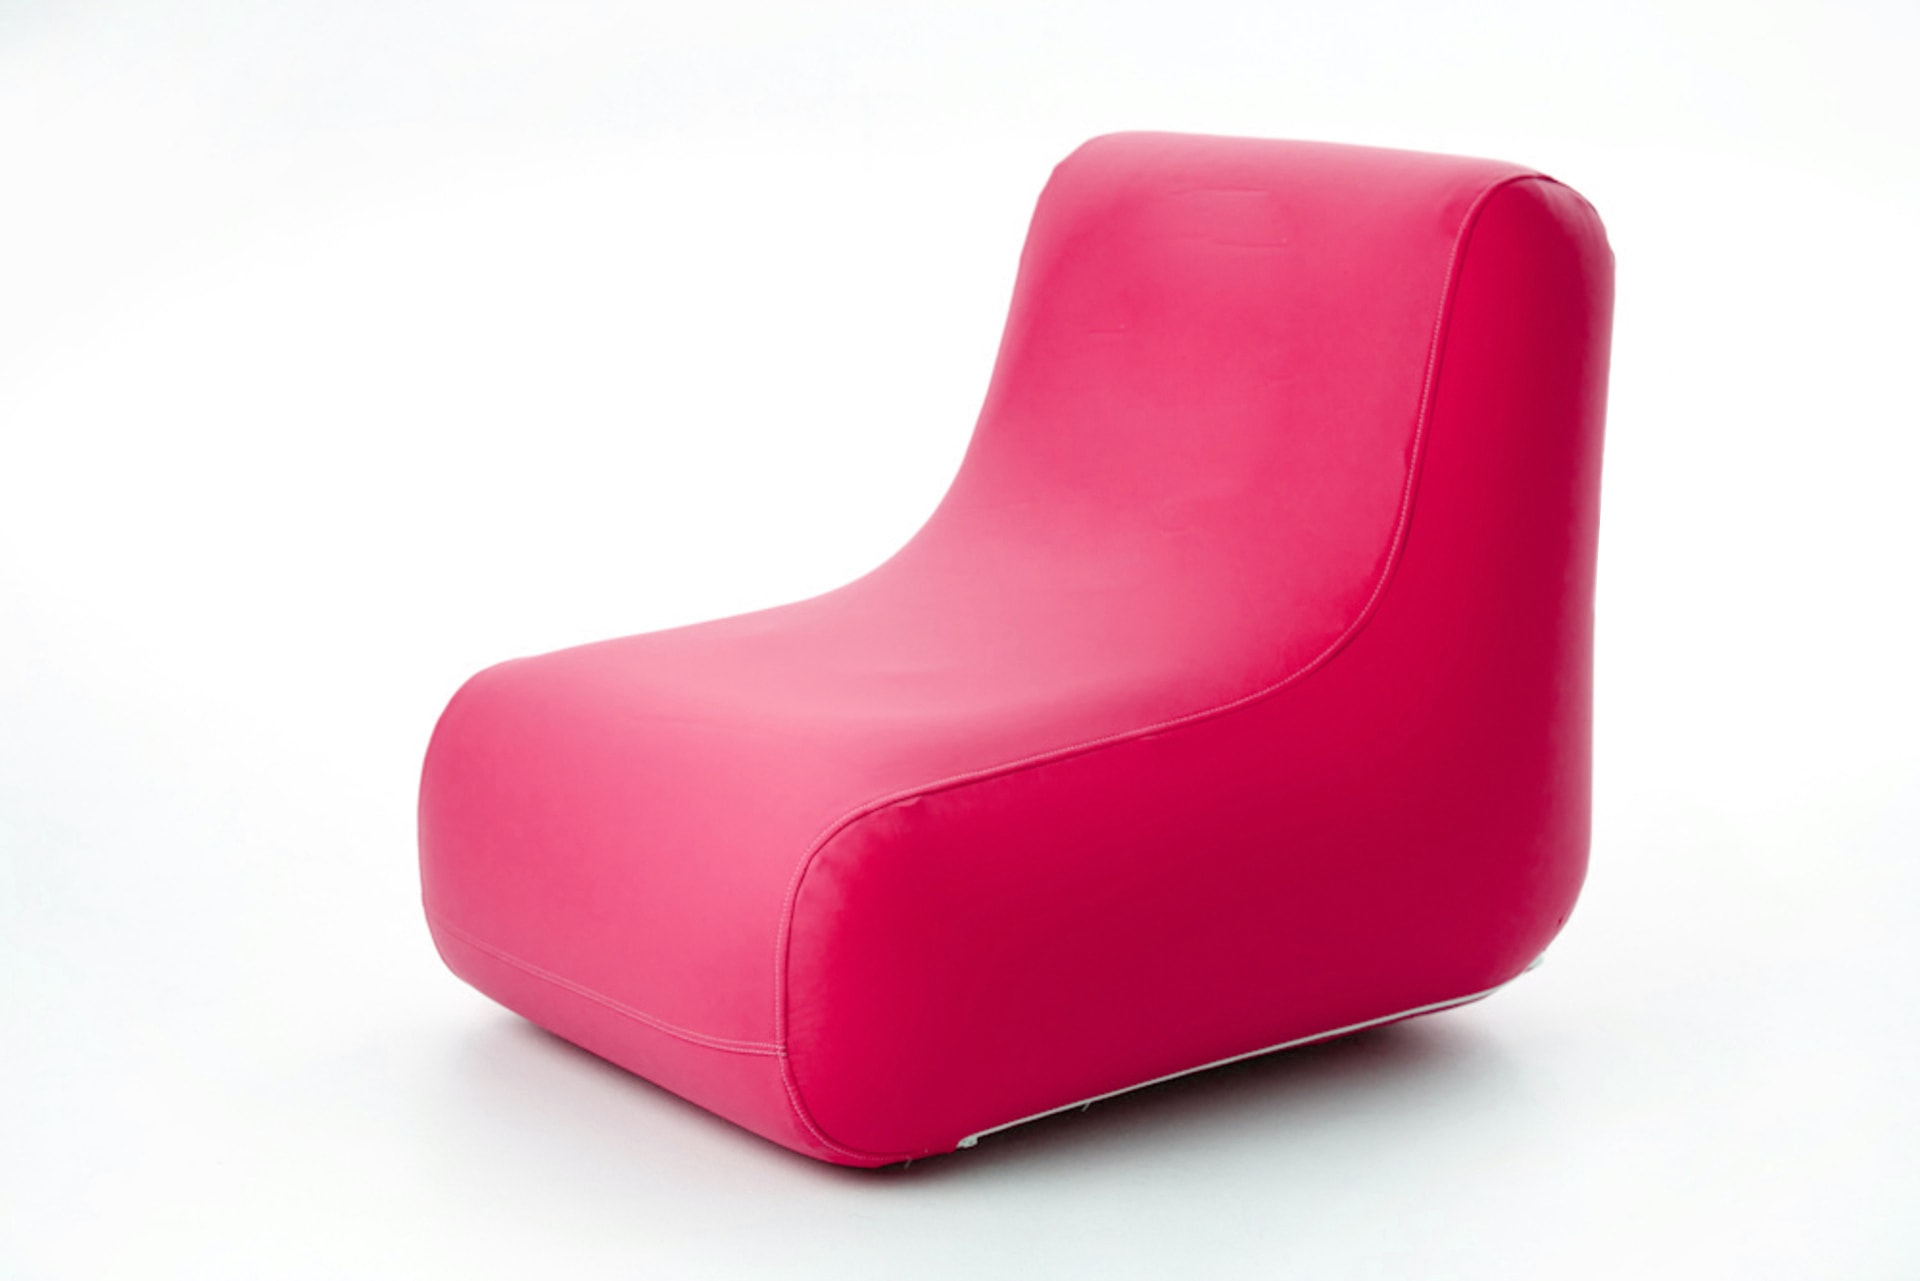 Fauteuil Chesterfield Fushia Fauteuil Gonflable Housse Textile Similicuir Fuchsia